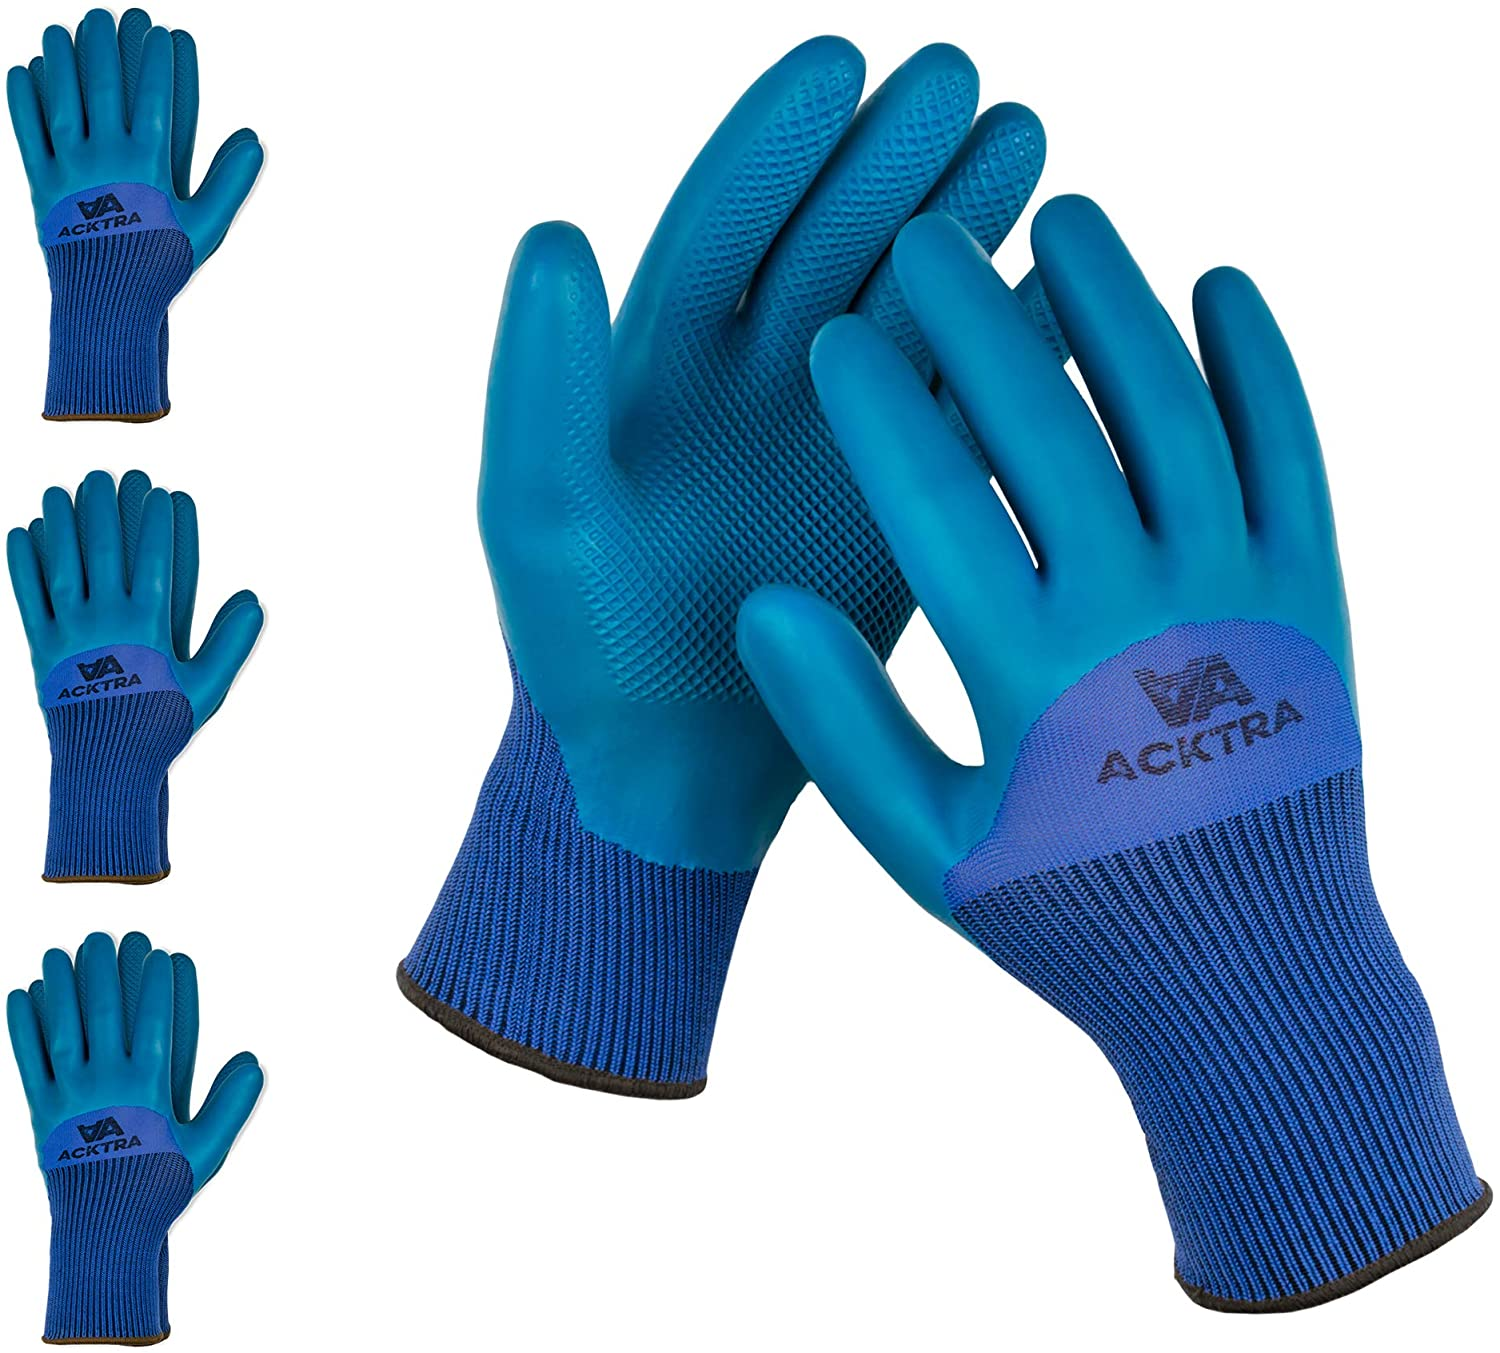 ACKTRA Safety WORK GLOVES 3 pairs, Seamless Blue Nylon Spandex Liner, Teal Textured Eco-Latex Coated, Comfort Fit, Power Grip, for Men and Women, 3/4 Coated, WG017, X-Large